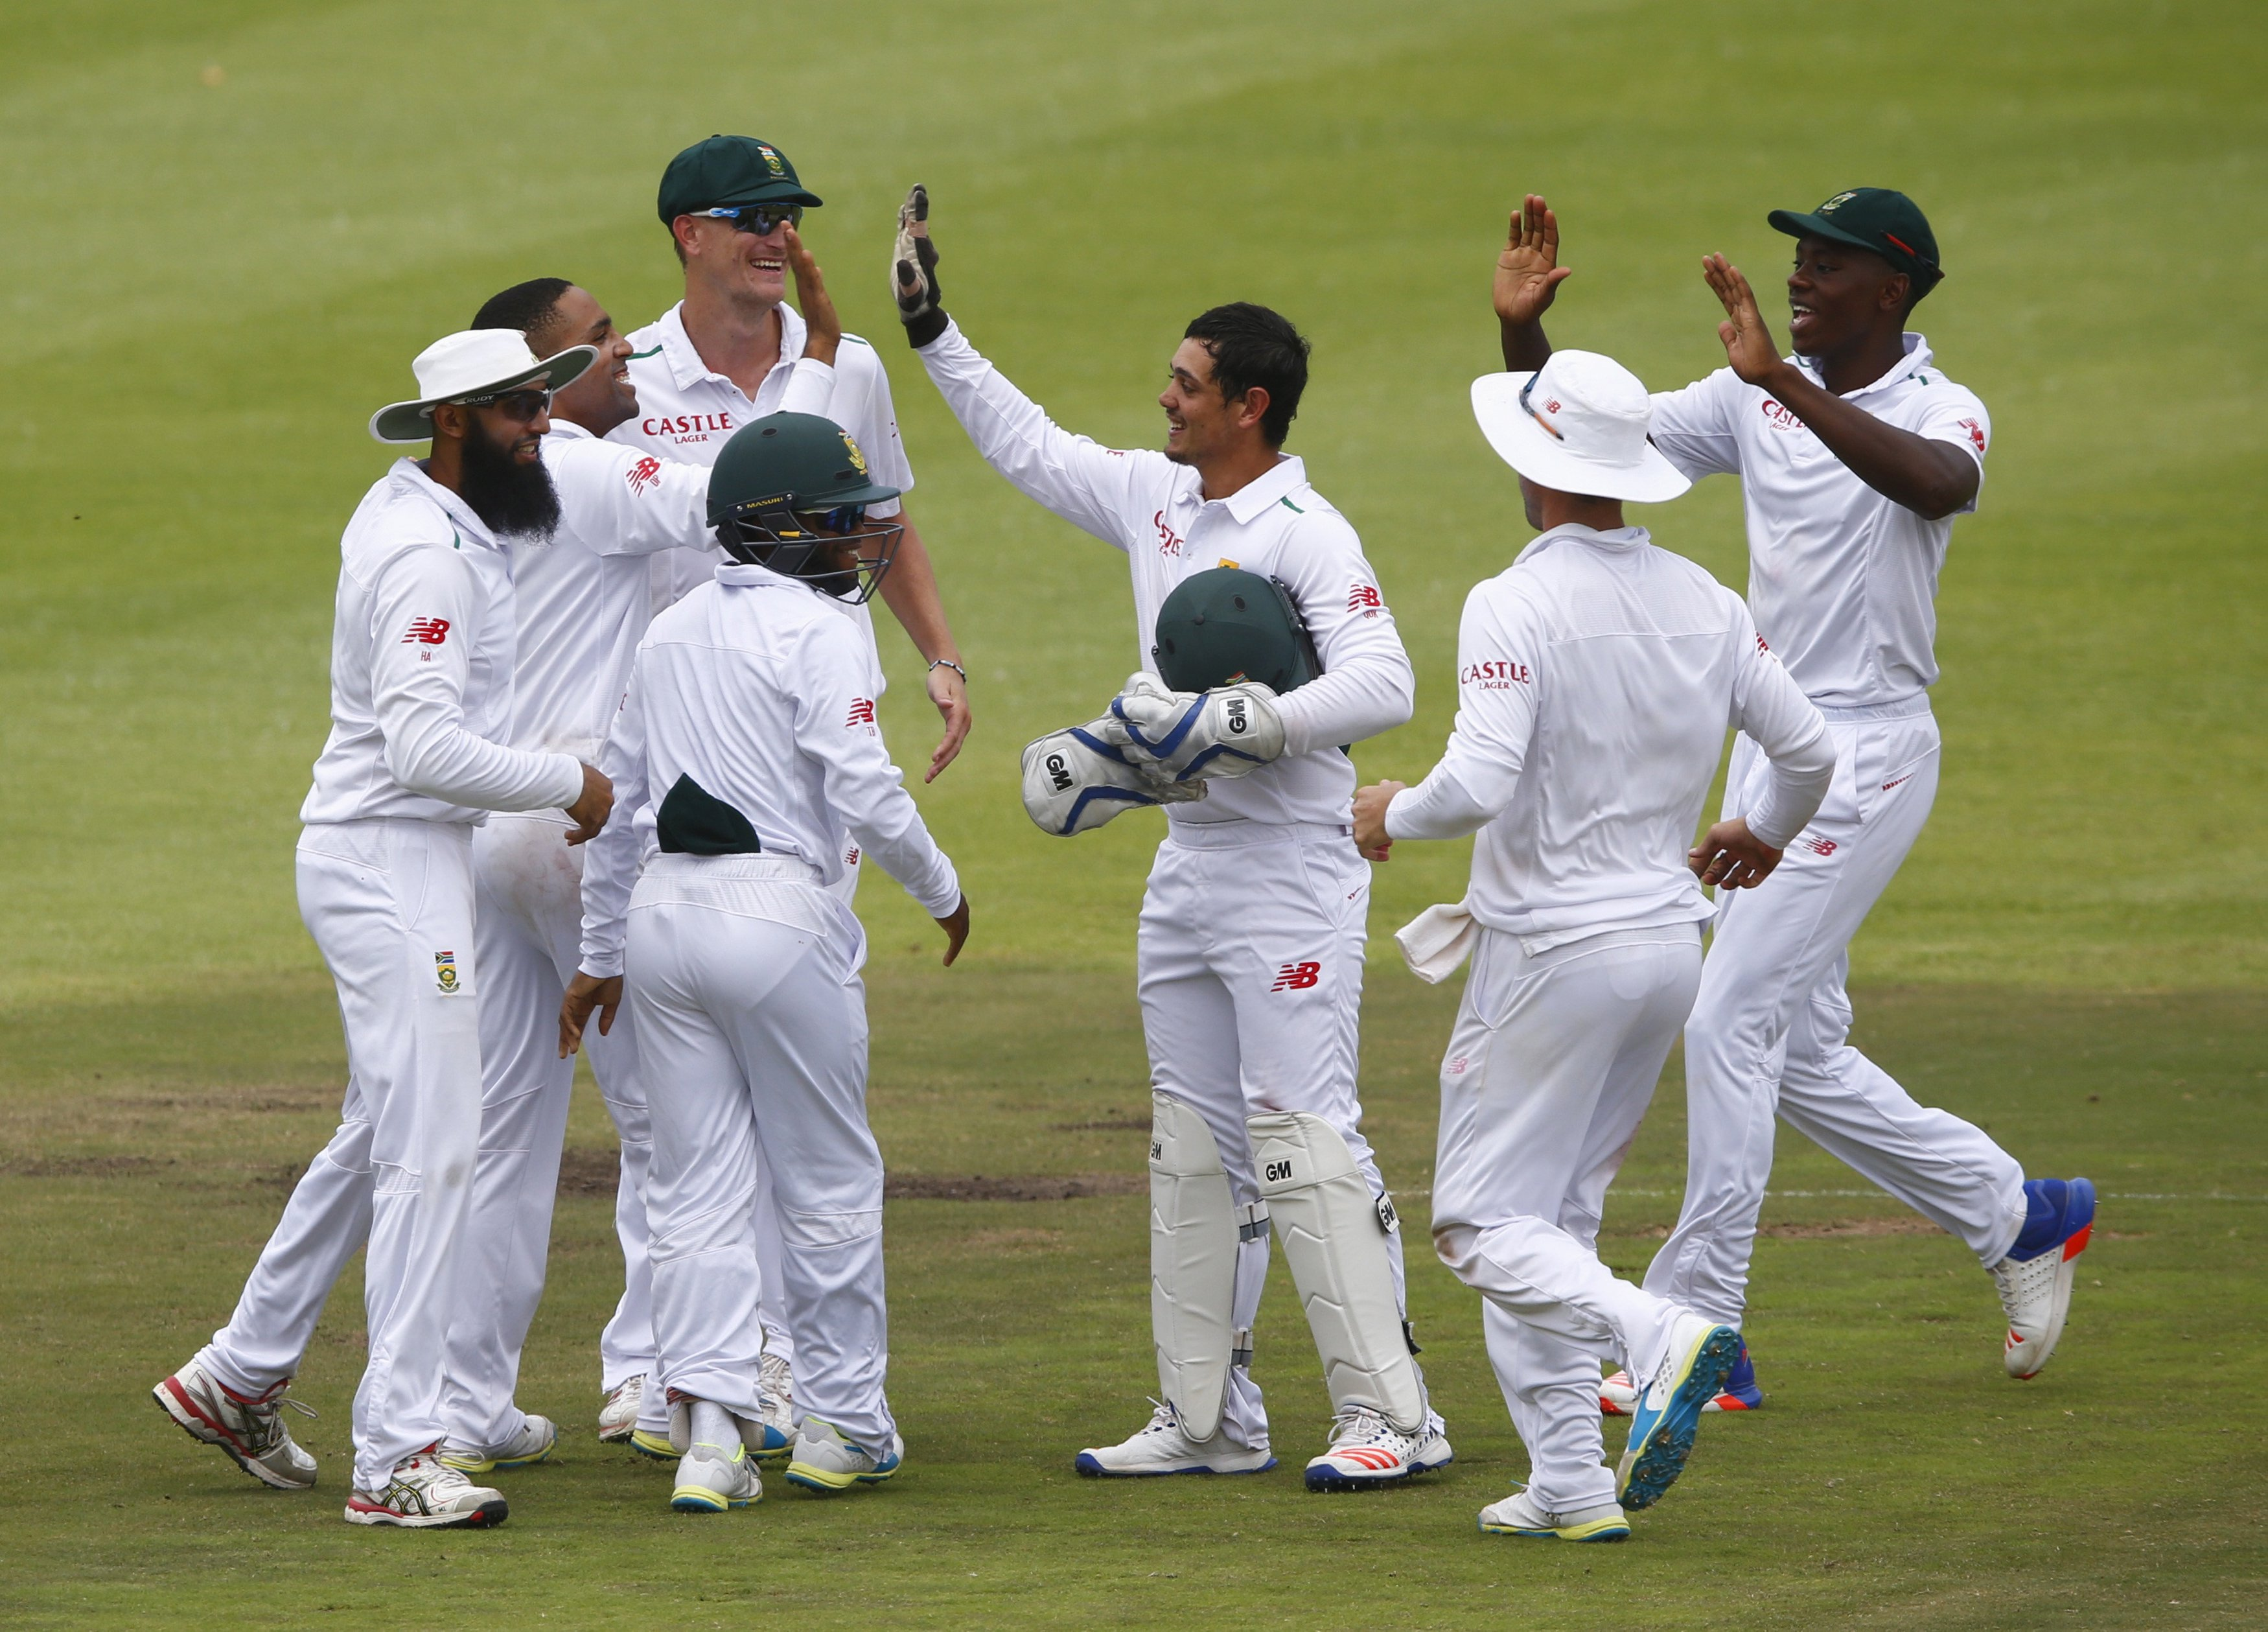 South Africa celebrate the wicket of England's Nick Compton (not in picture) during the second cricket test match in Cape Town, South Africa, January 6, 2016. Photo: Reuters